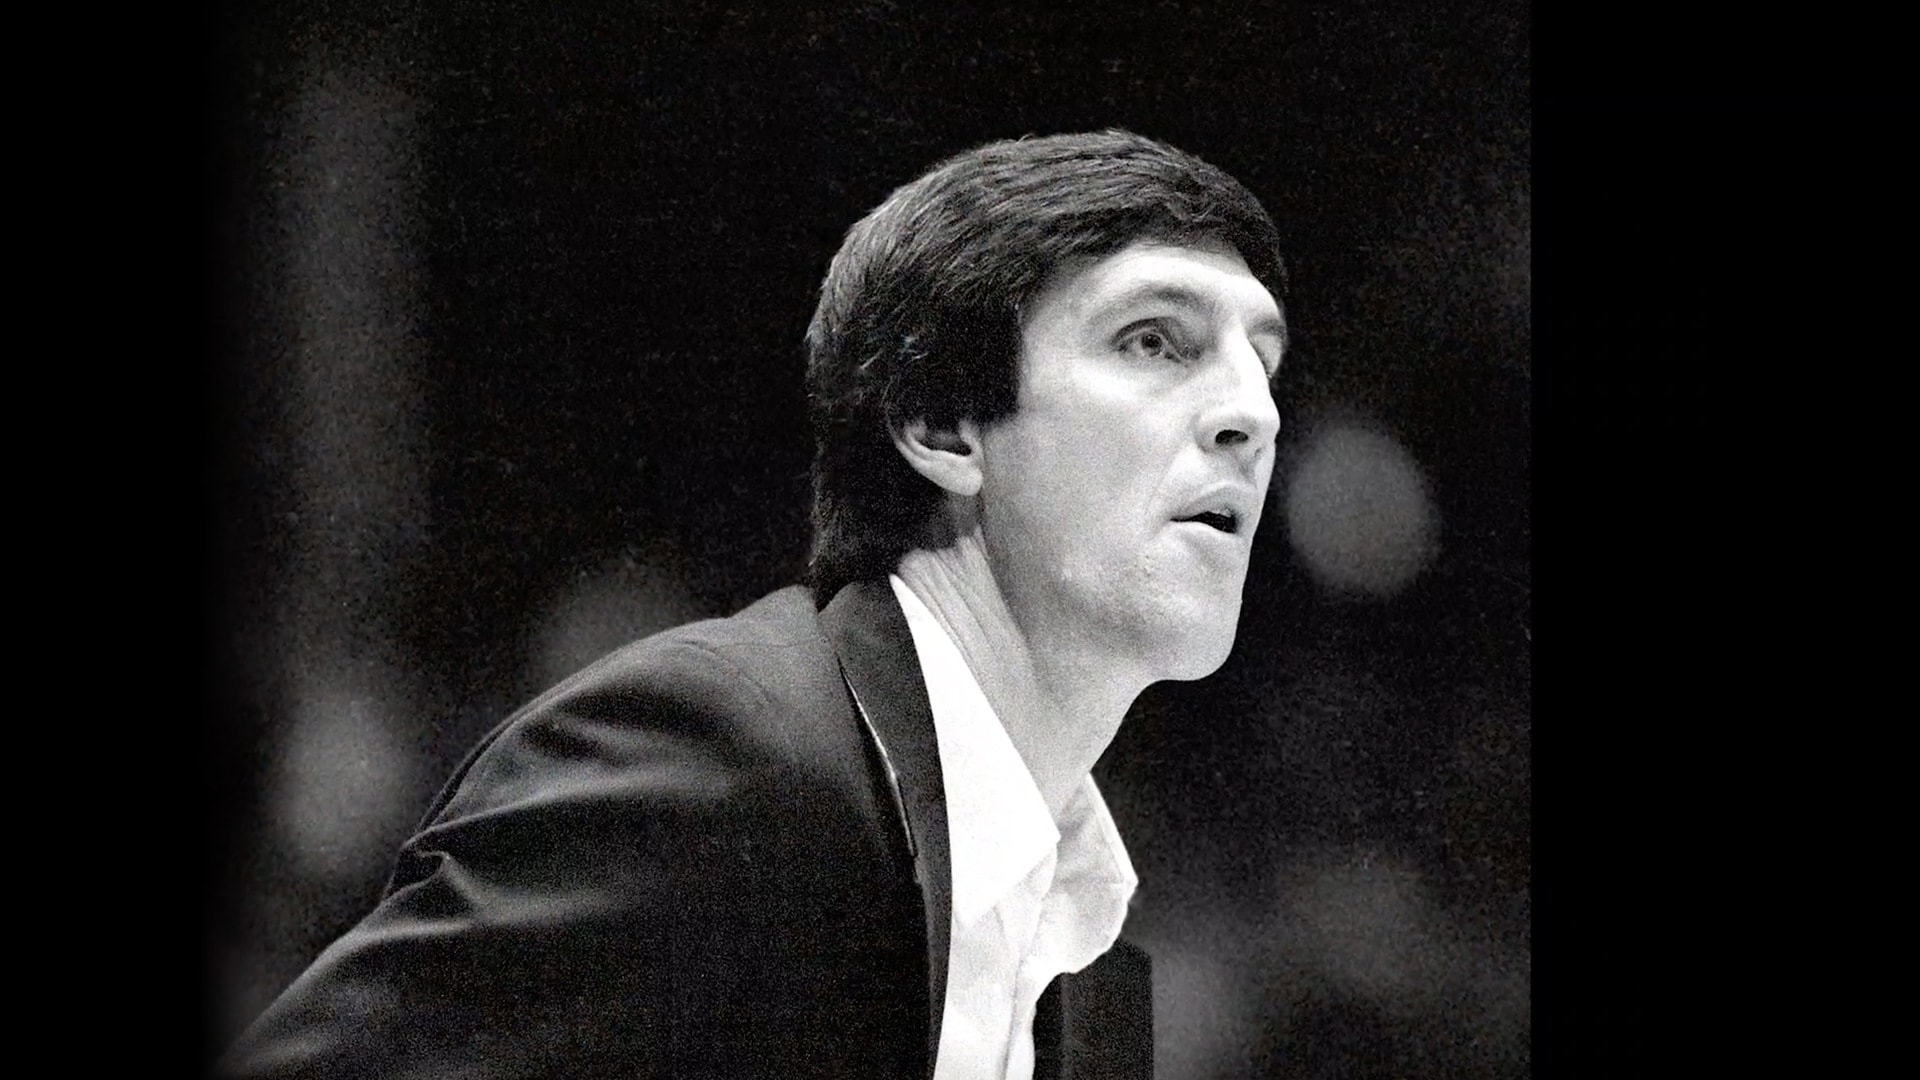 Remembering Coach Jerry Sloan